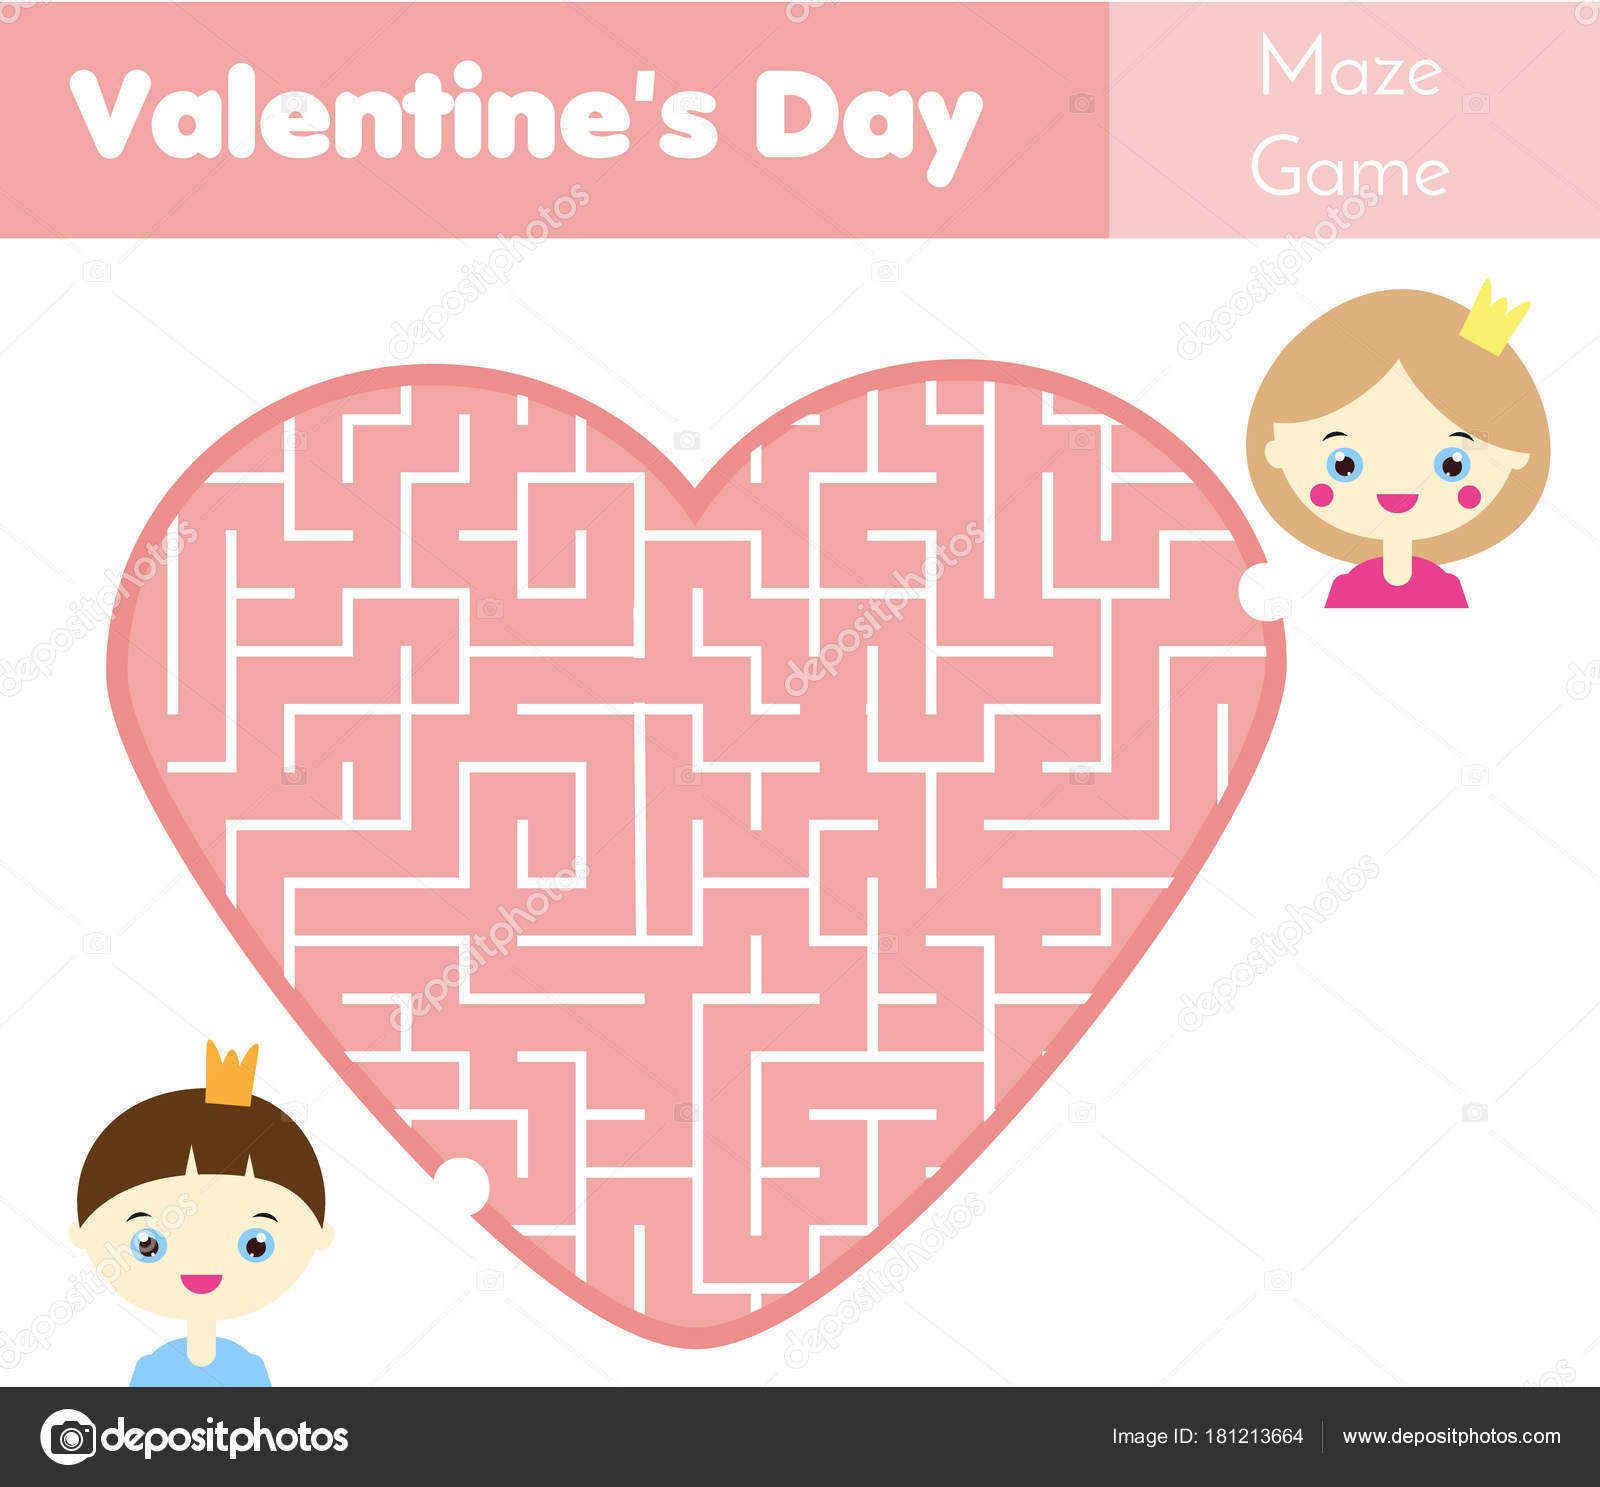 Valentines Day Activity Sheets For Kids